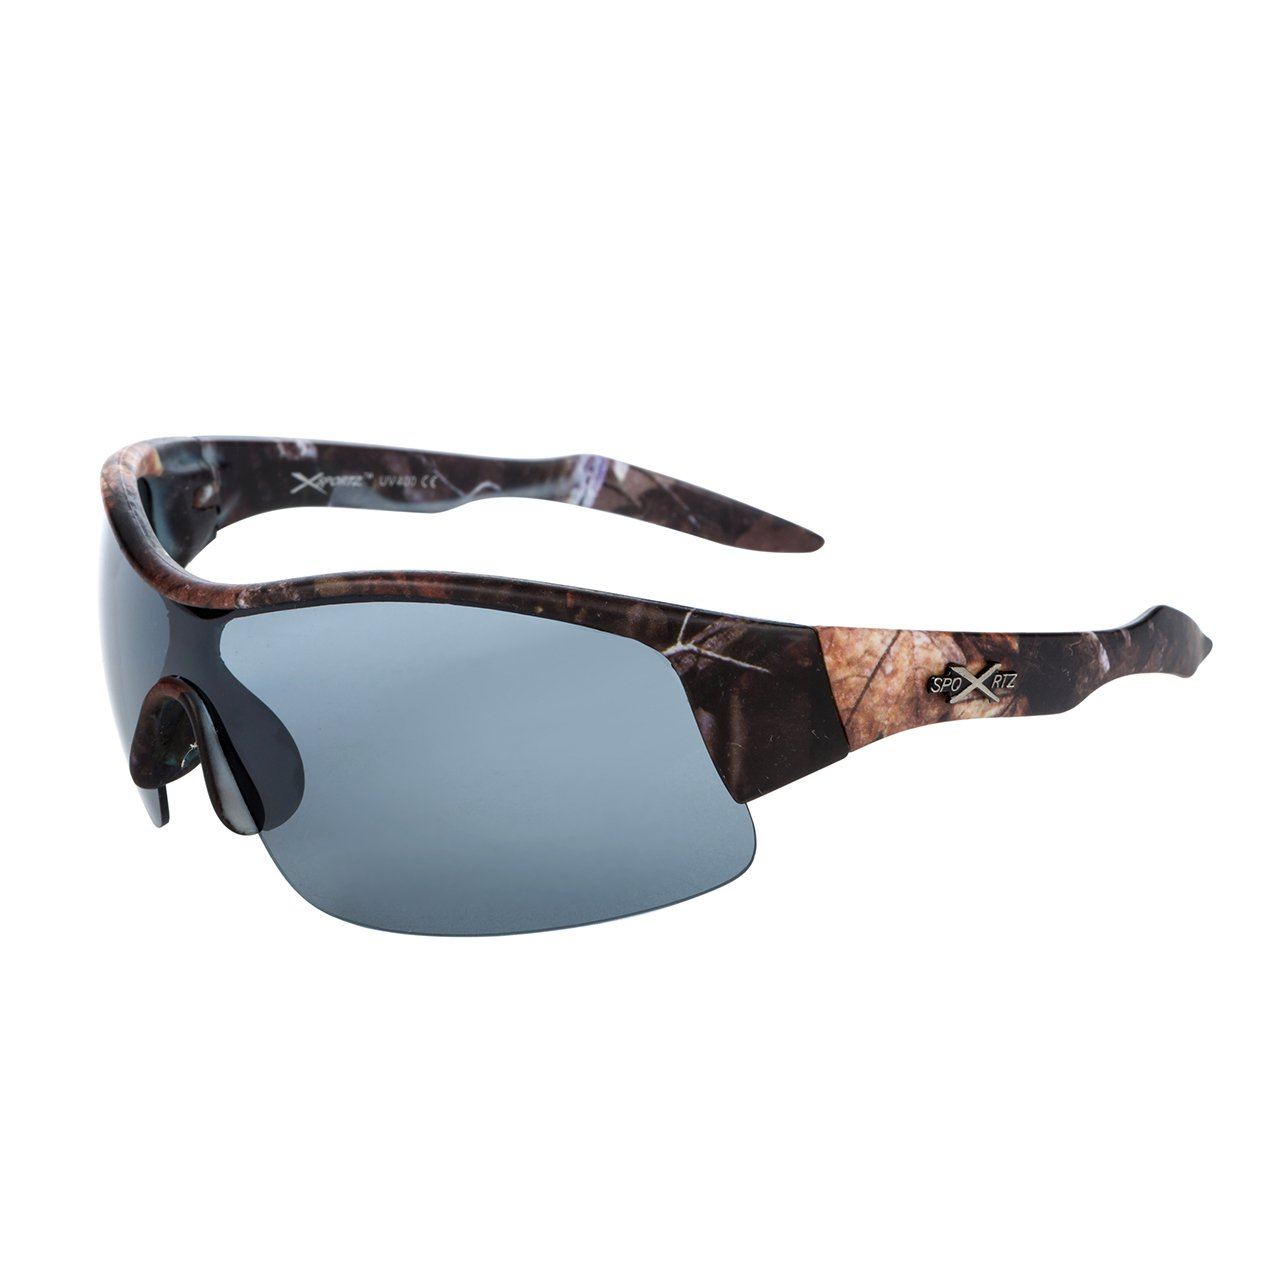 MEN'S DESIGNER INSPIRED CAMOUFLAGE SUNGLASSES